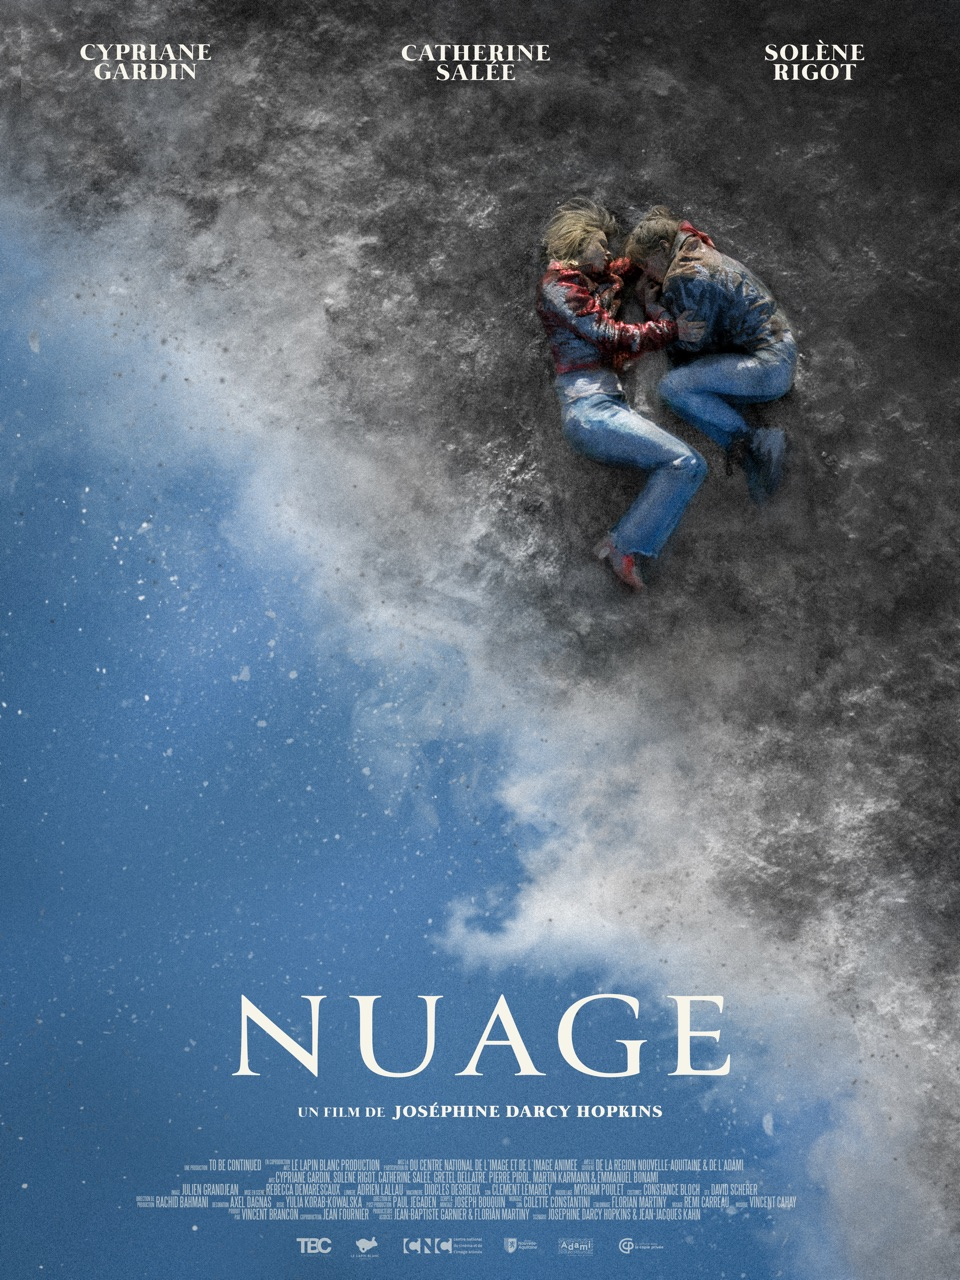 Nuage poster